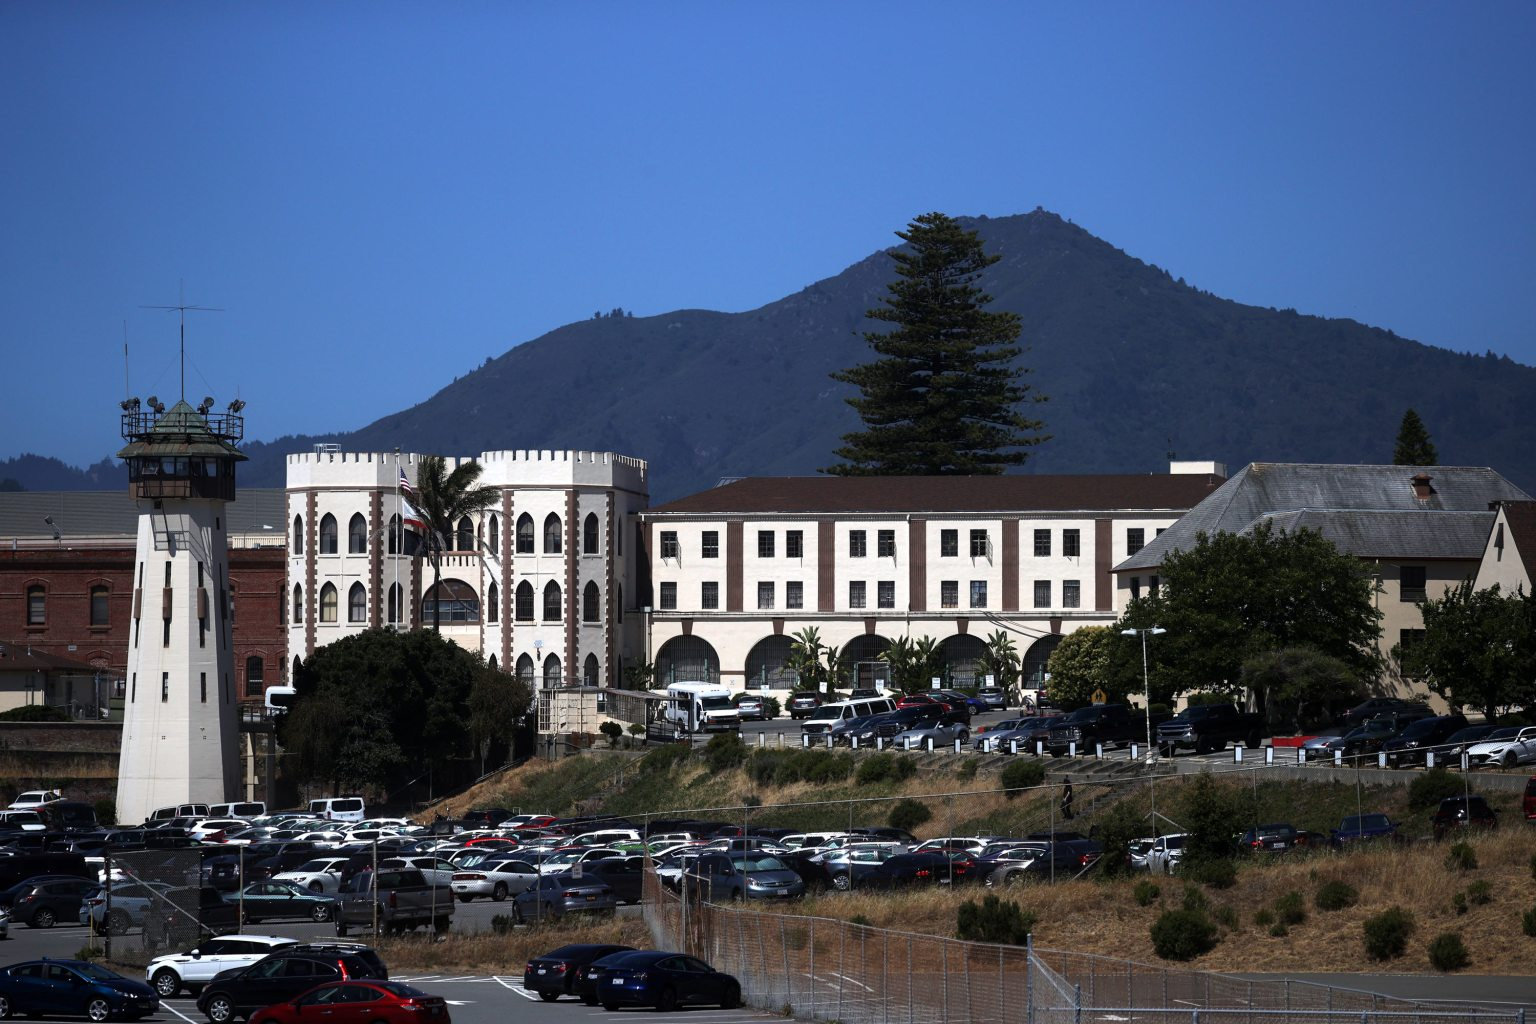 San Quentin prison fined more than $400,000 after deadly Covid-19 outbreak